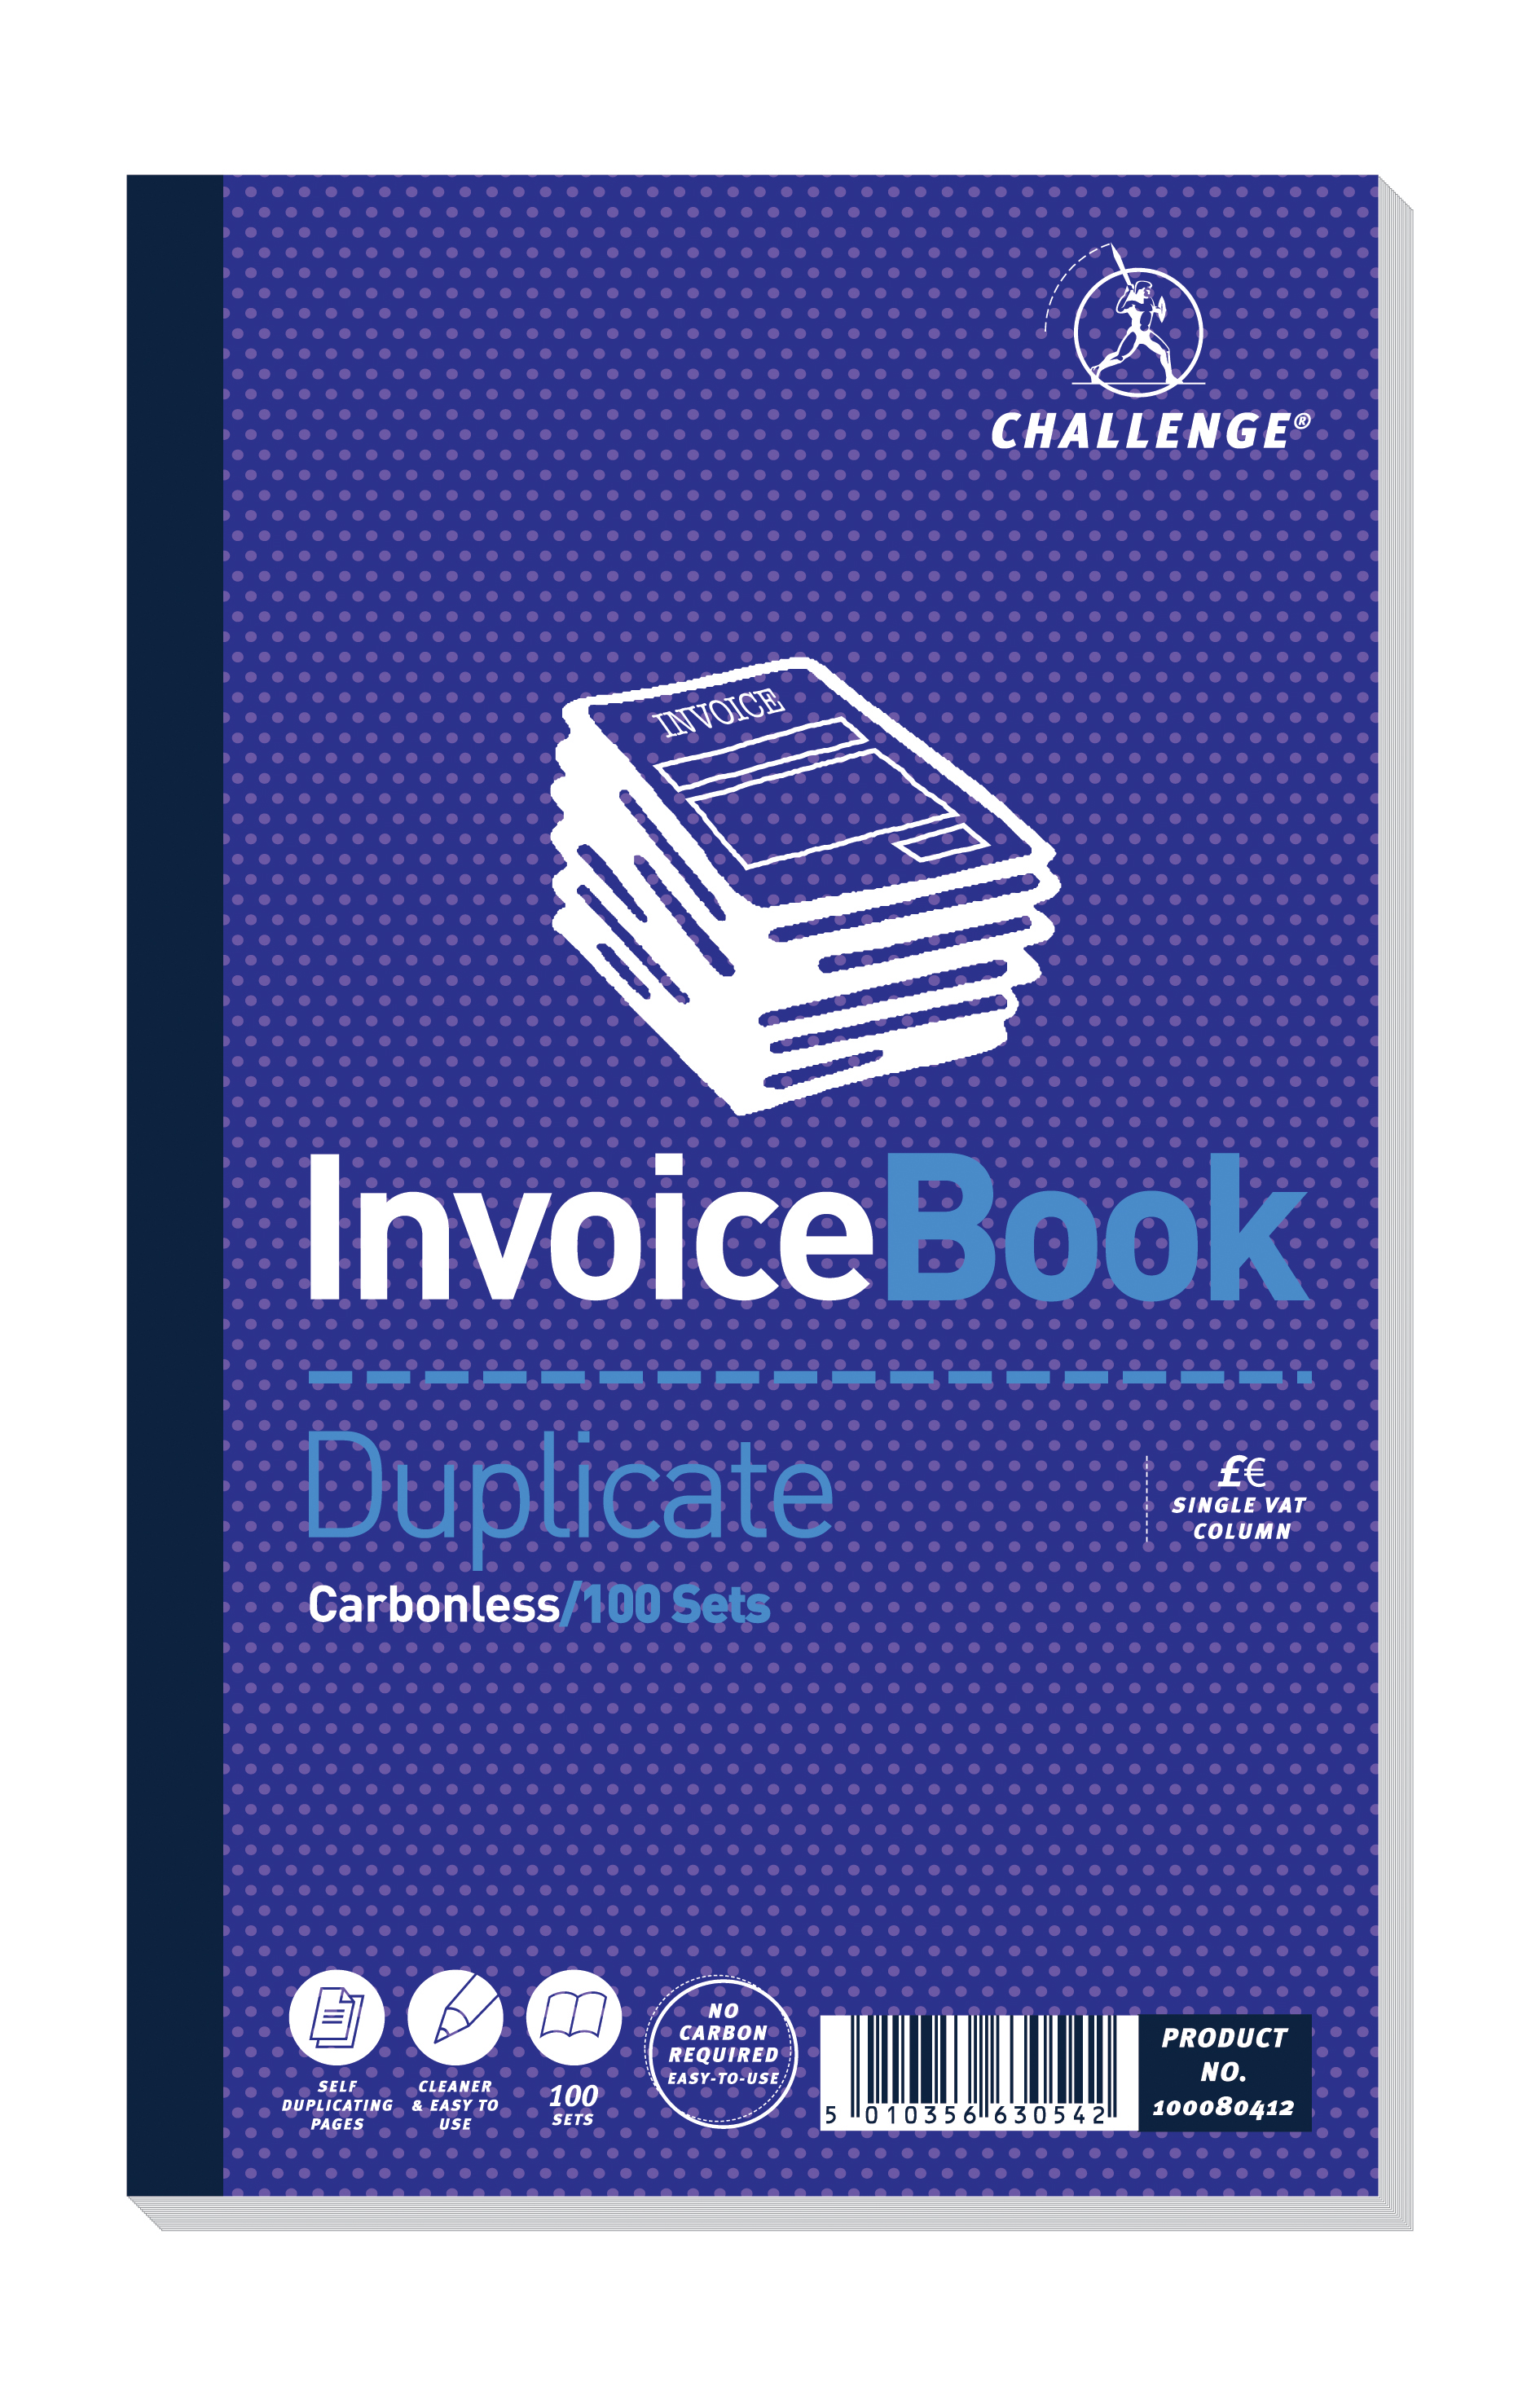 Challenge Duplicate Book Carbonless Invoice Single VATTax Sets - How to use an invoice book